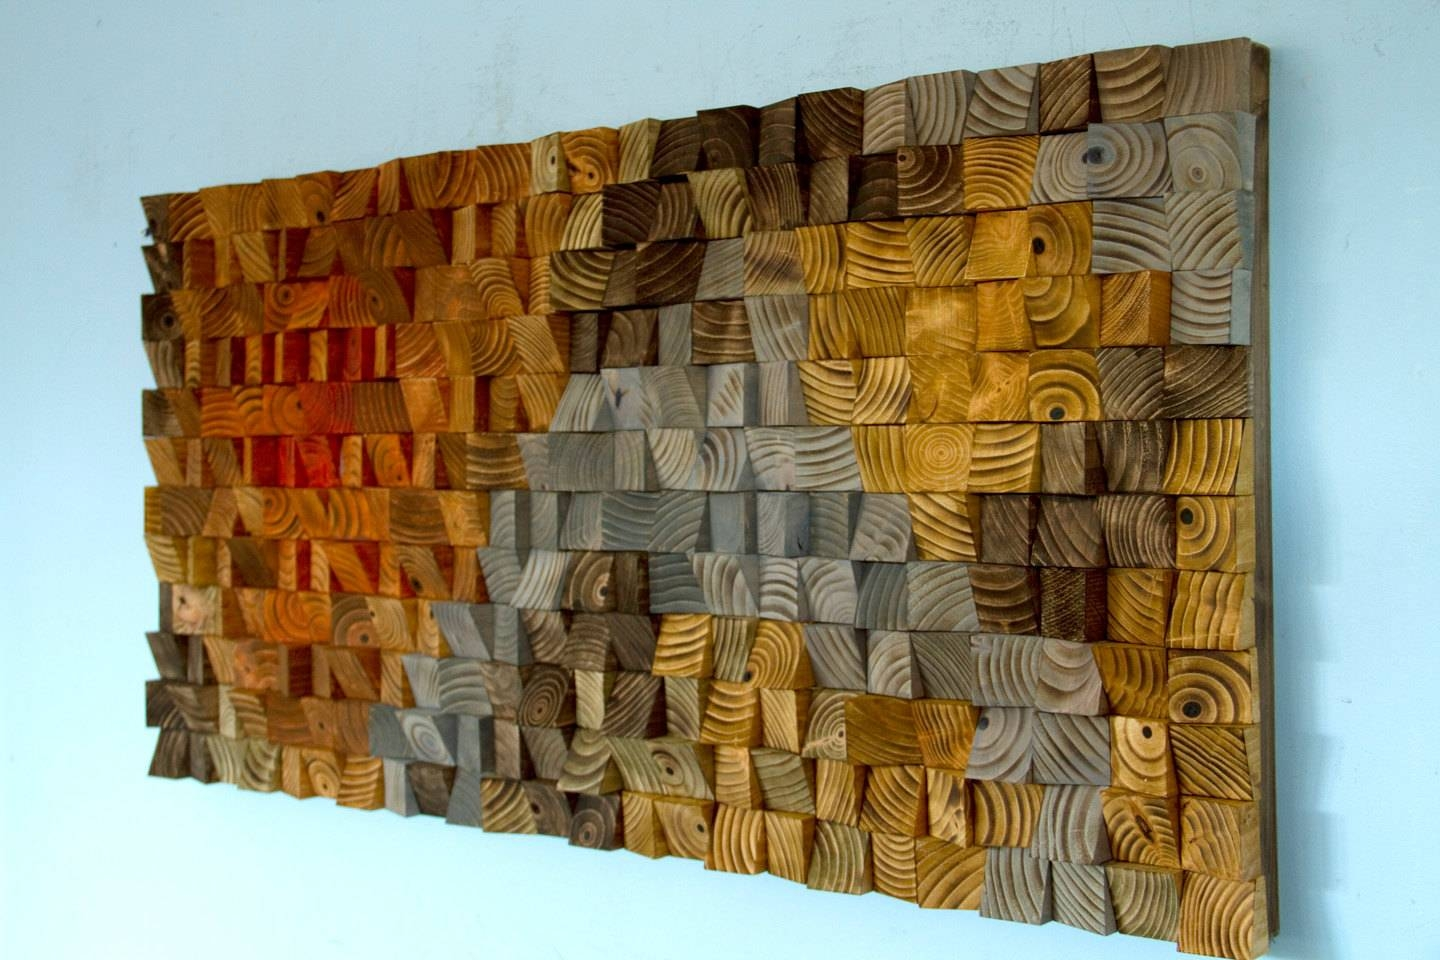 Wall Wood Art Lovely As Large Wall Art For 3D Wall Art | Lansikeji With Regard To 2017 Wood 3D Wall Art (View 16 of 20)